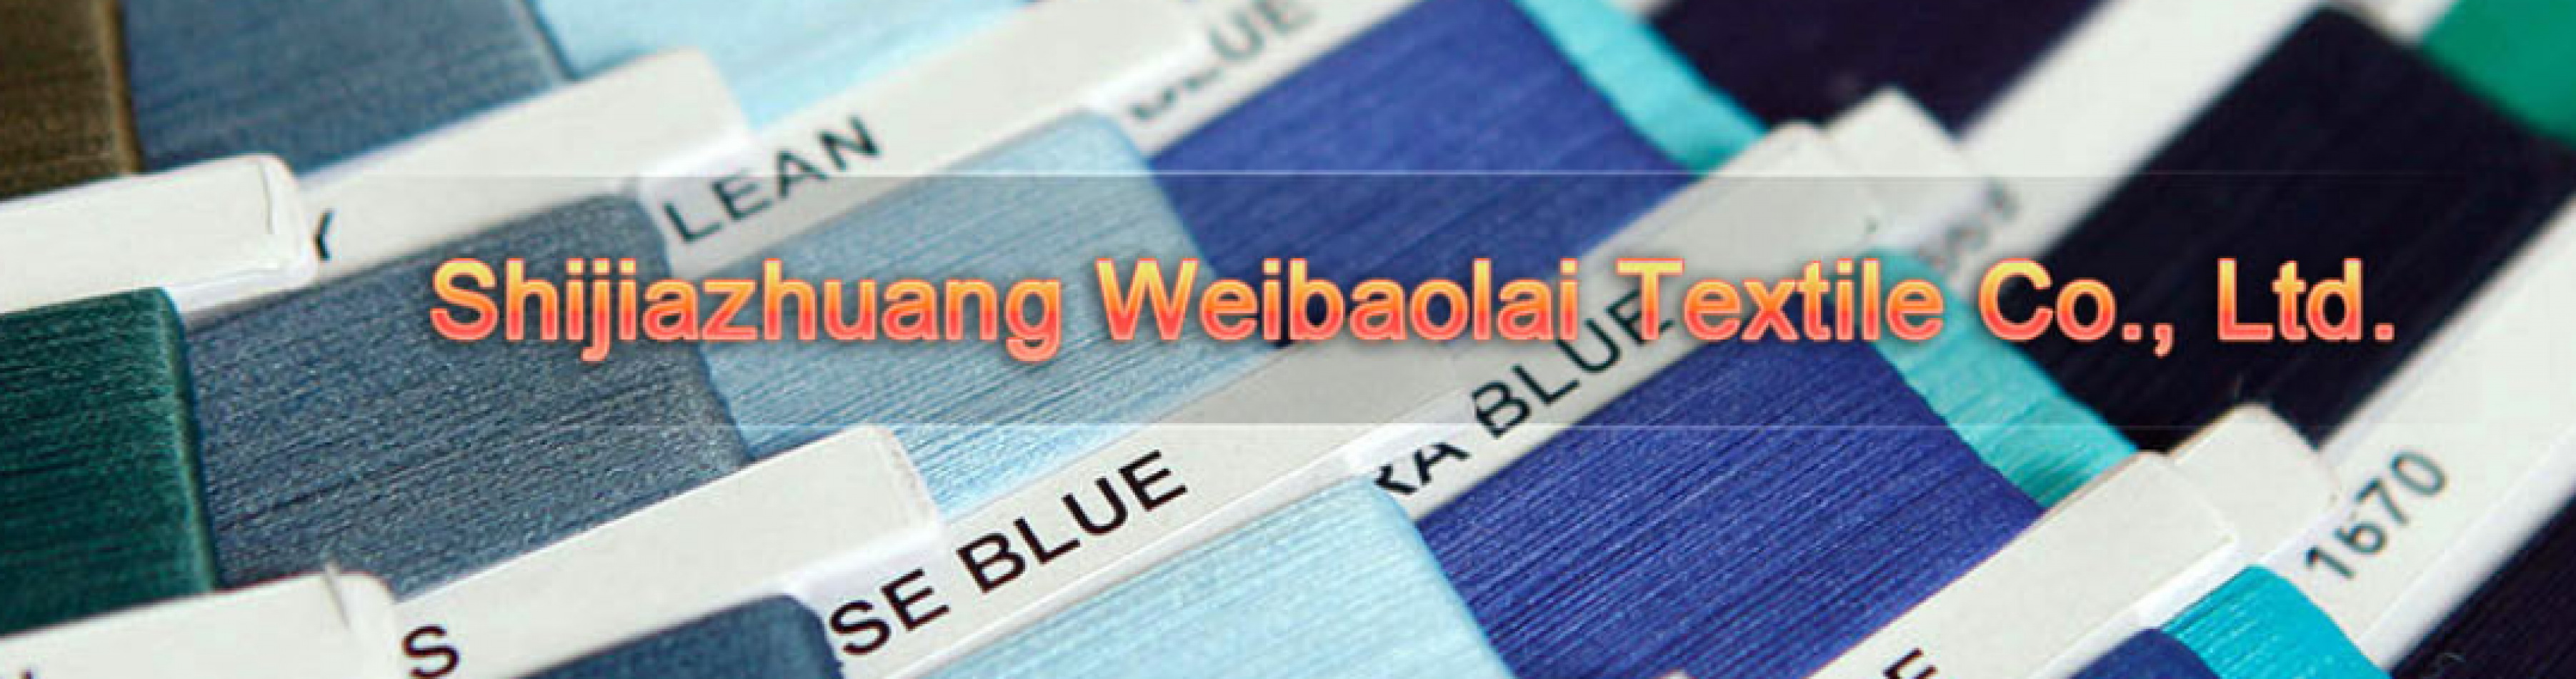 Shijiazhuang Weibaolai Textile Company Limited